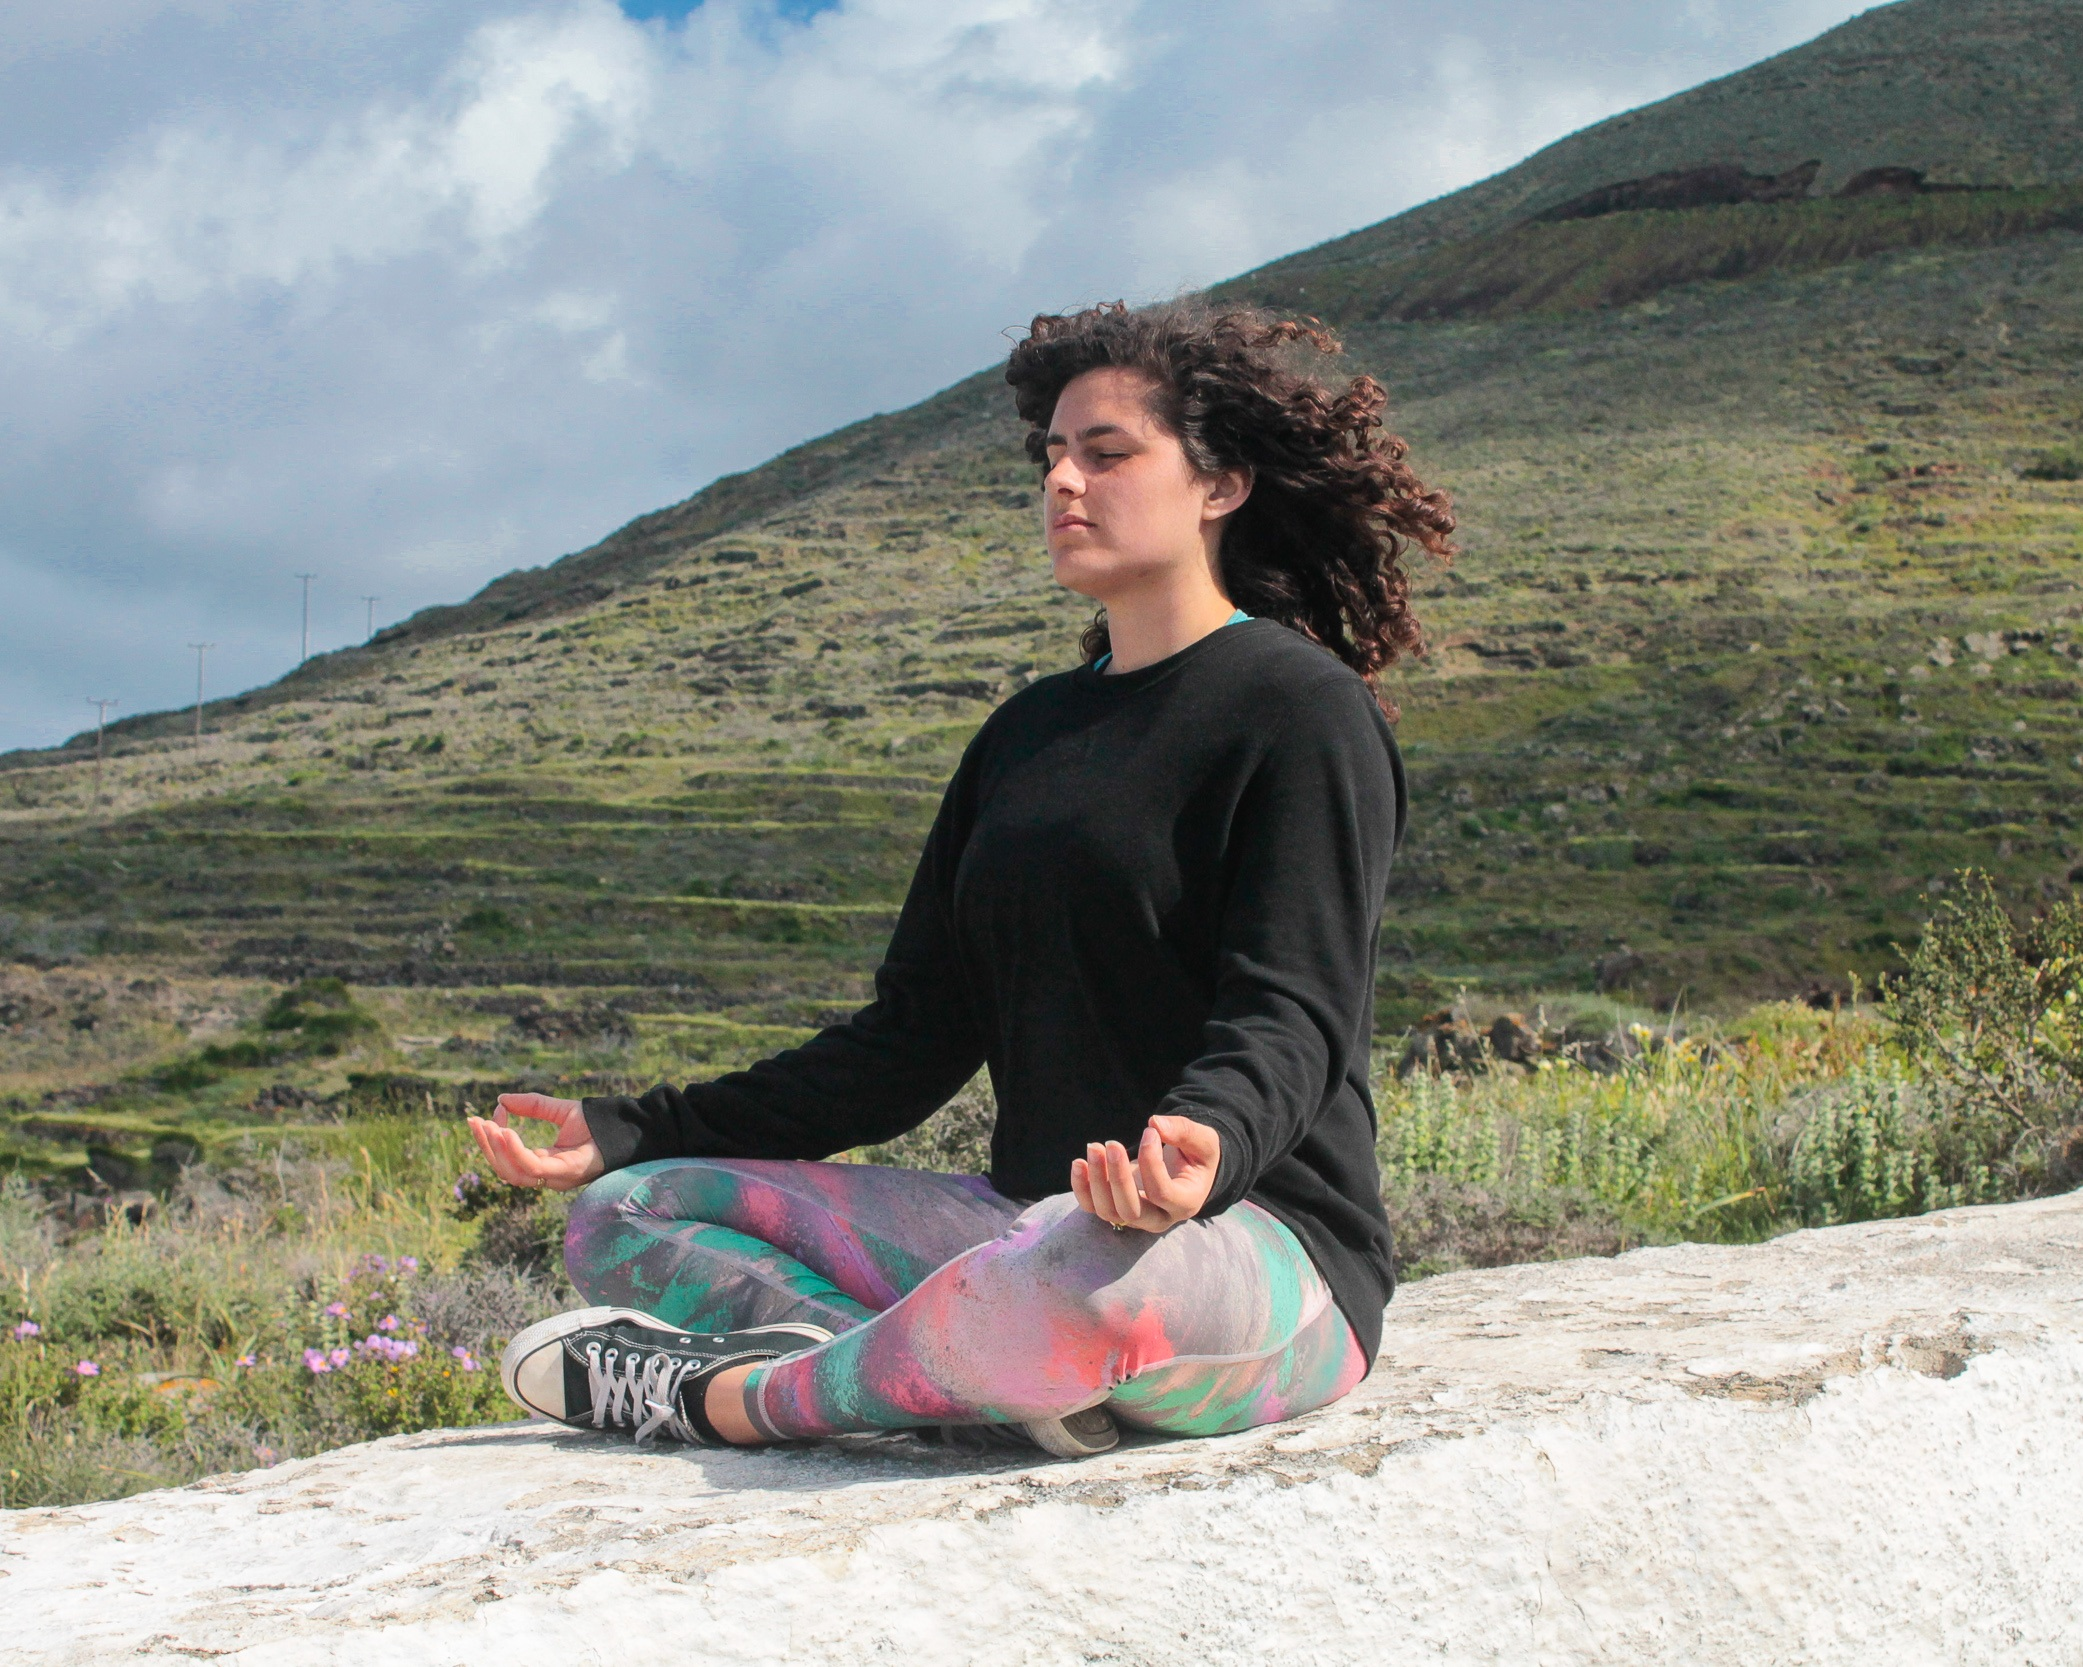 Meditation is a great way to achieved a sense of calm